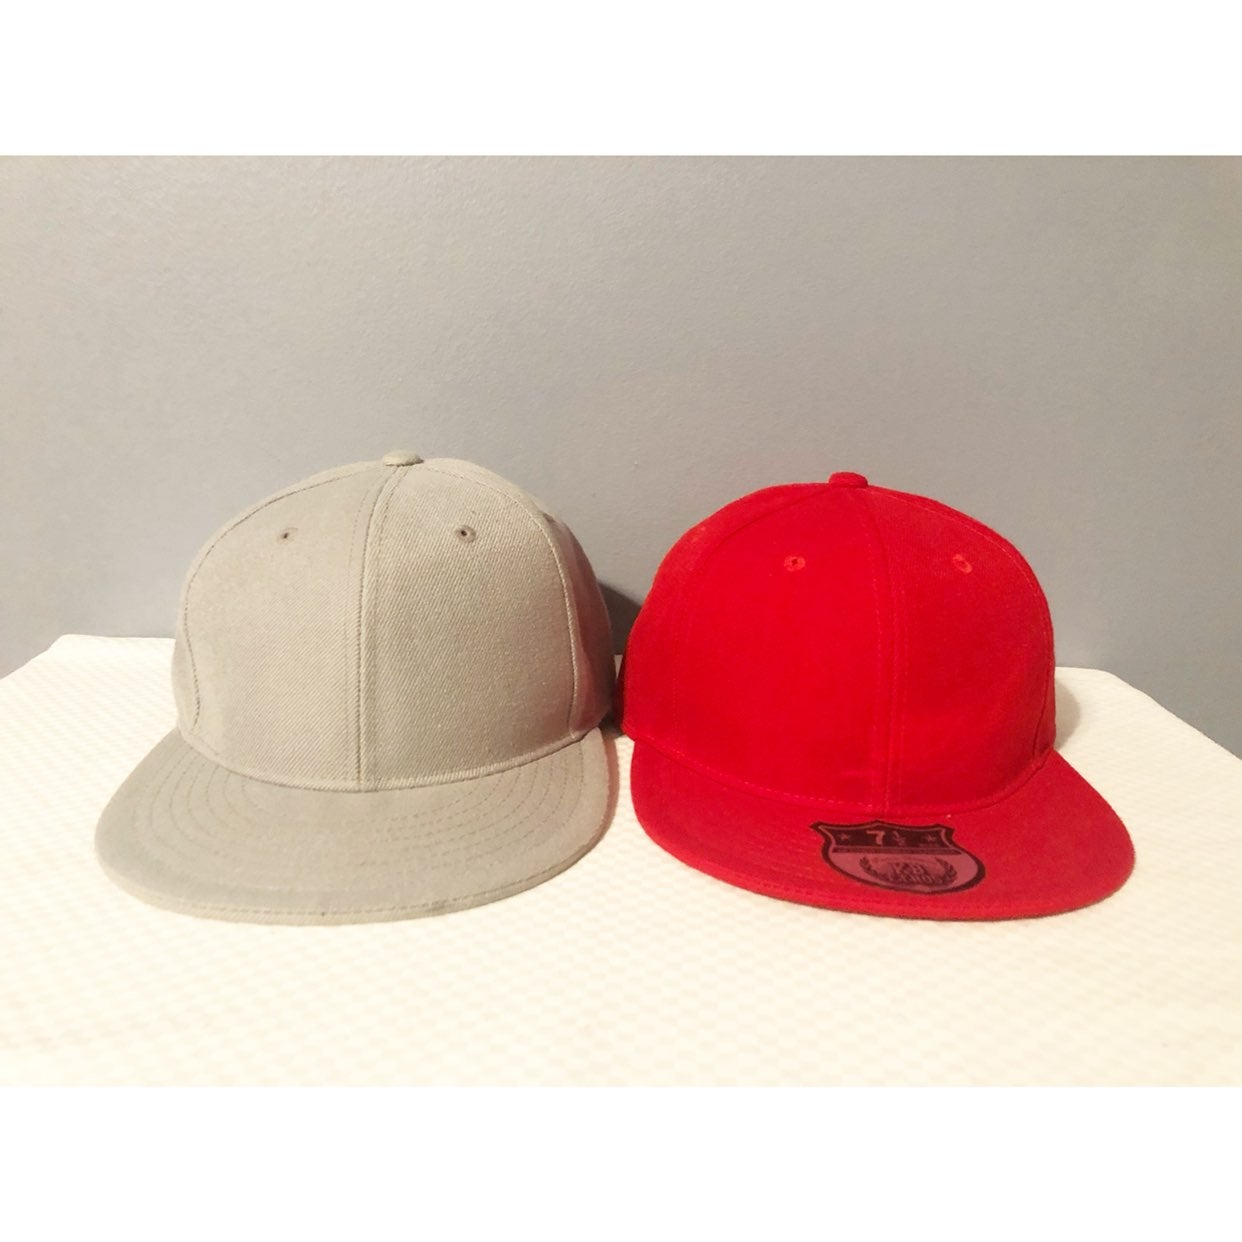 2 XL (7 1/2) Fitted Caps, Red & Grey